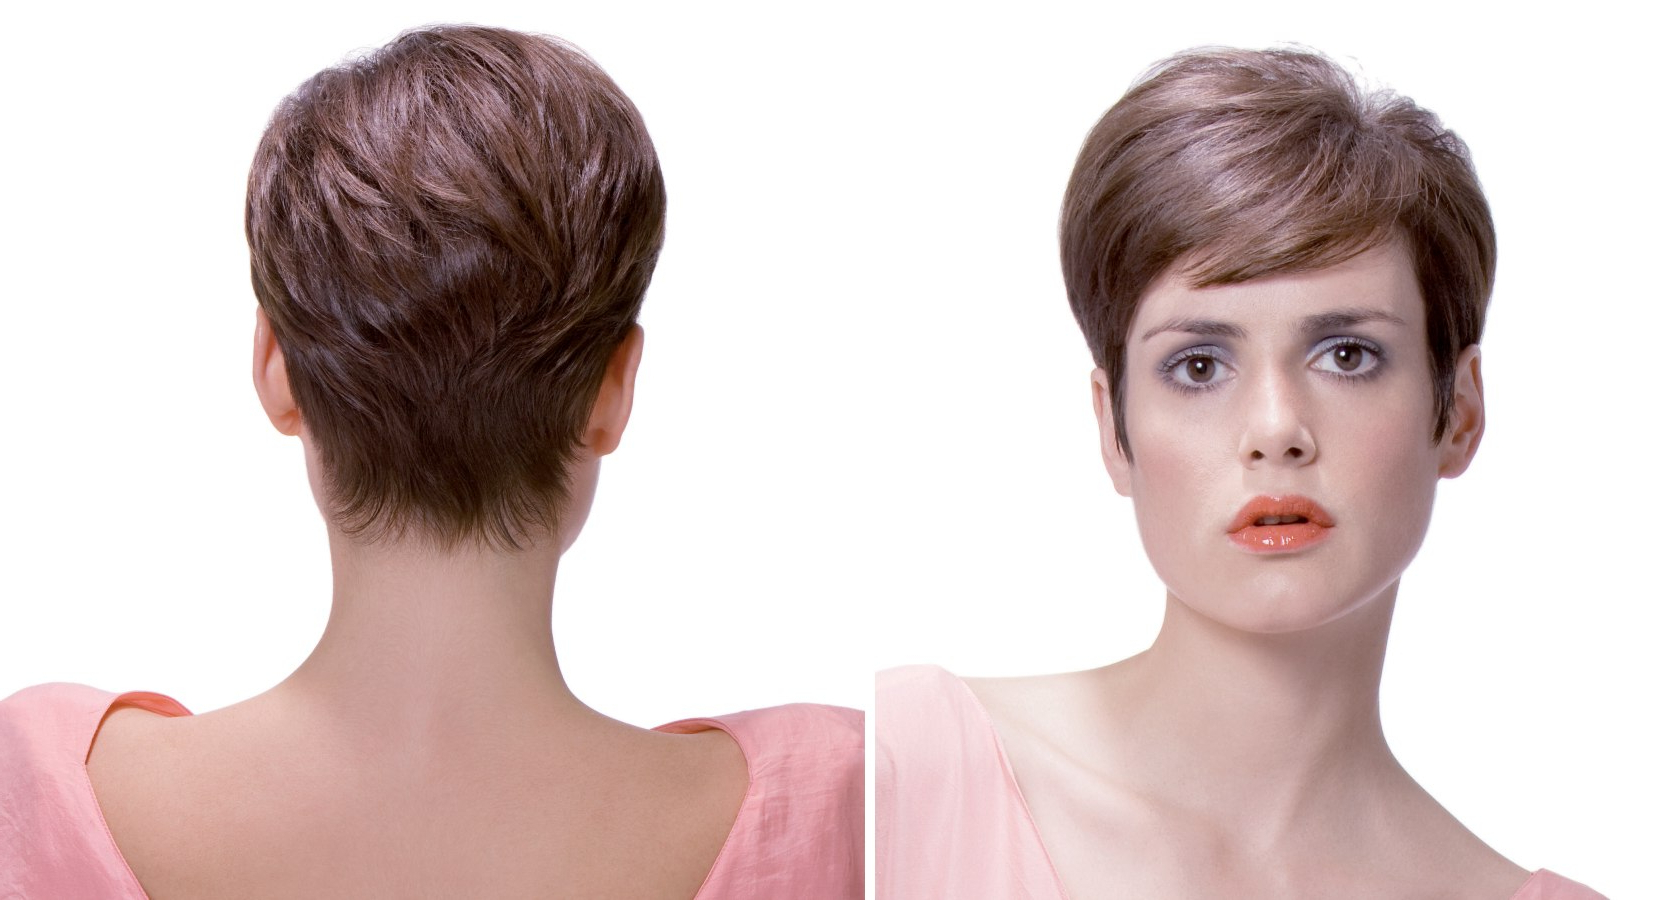 Short And Neat Summer Haircuts For Men And Women Inside Short Reinvented Hairstyles (View 12 of 20)